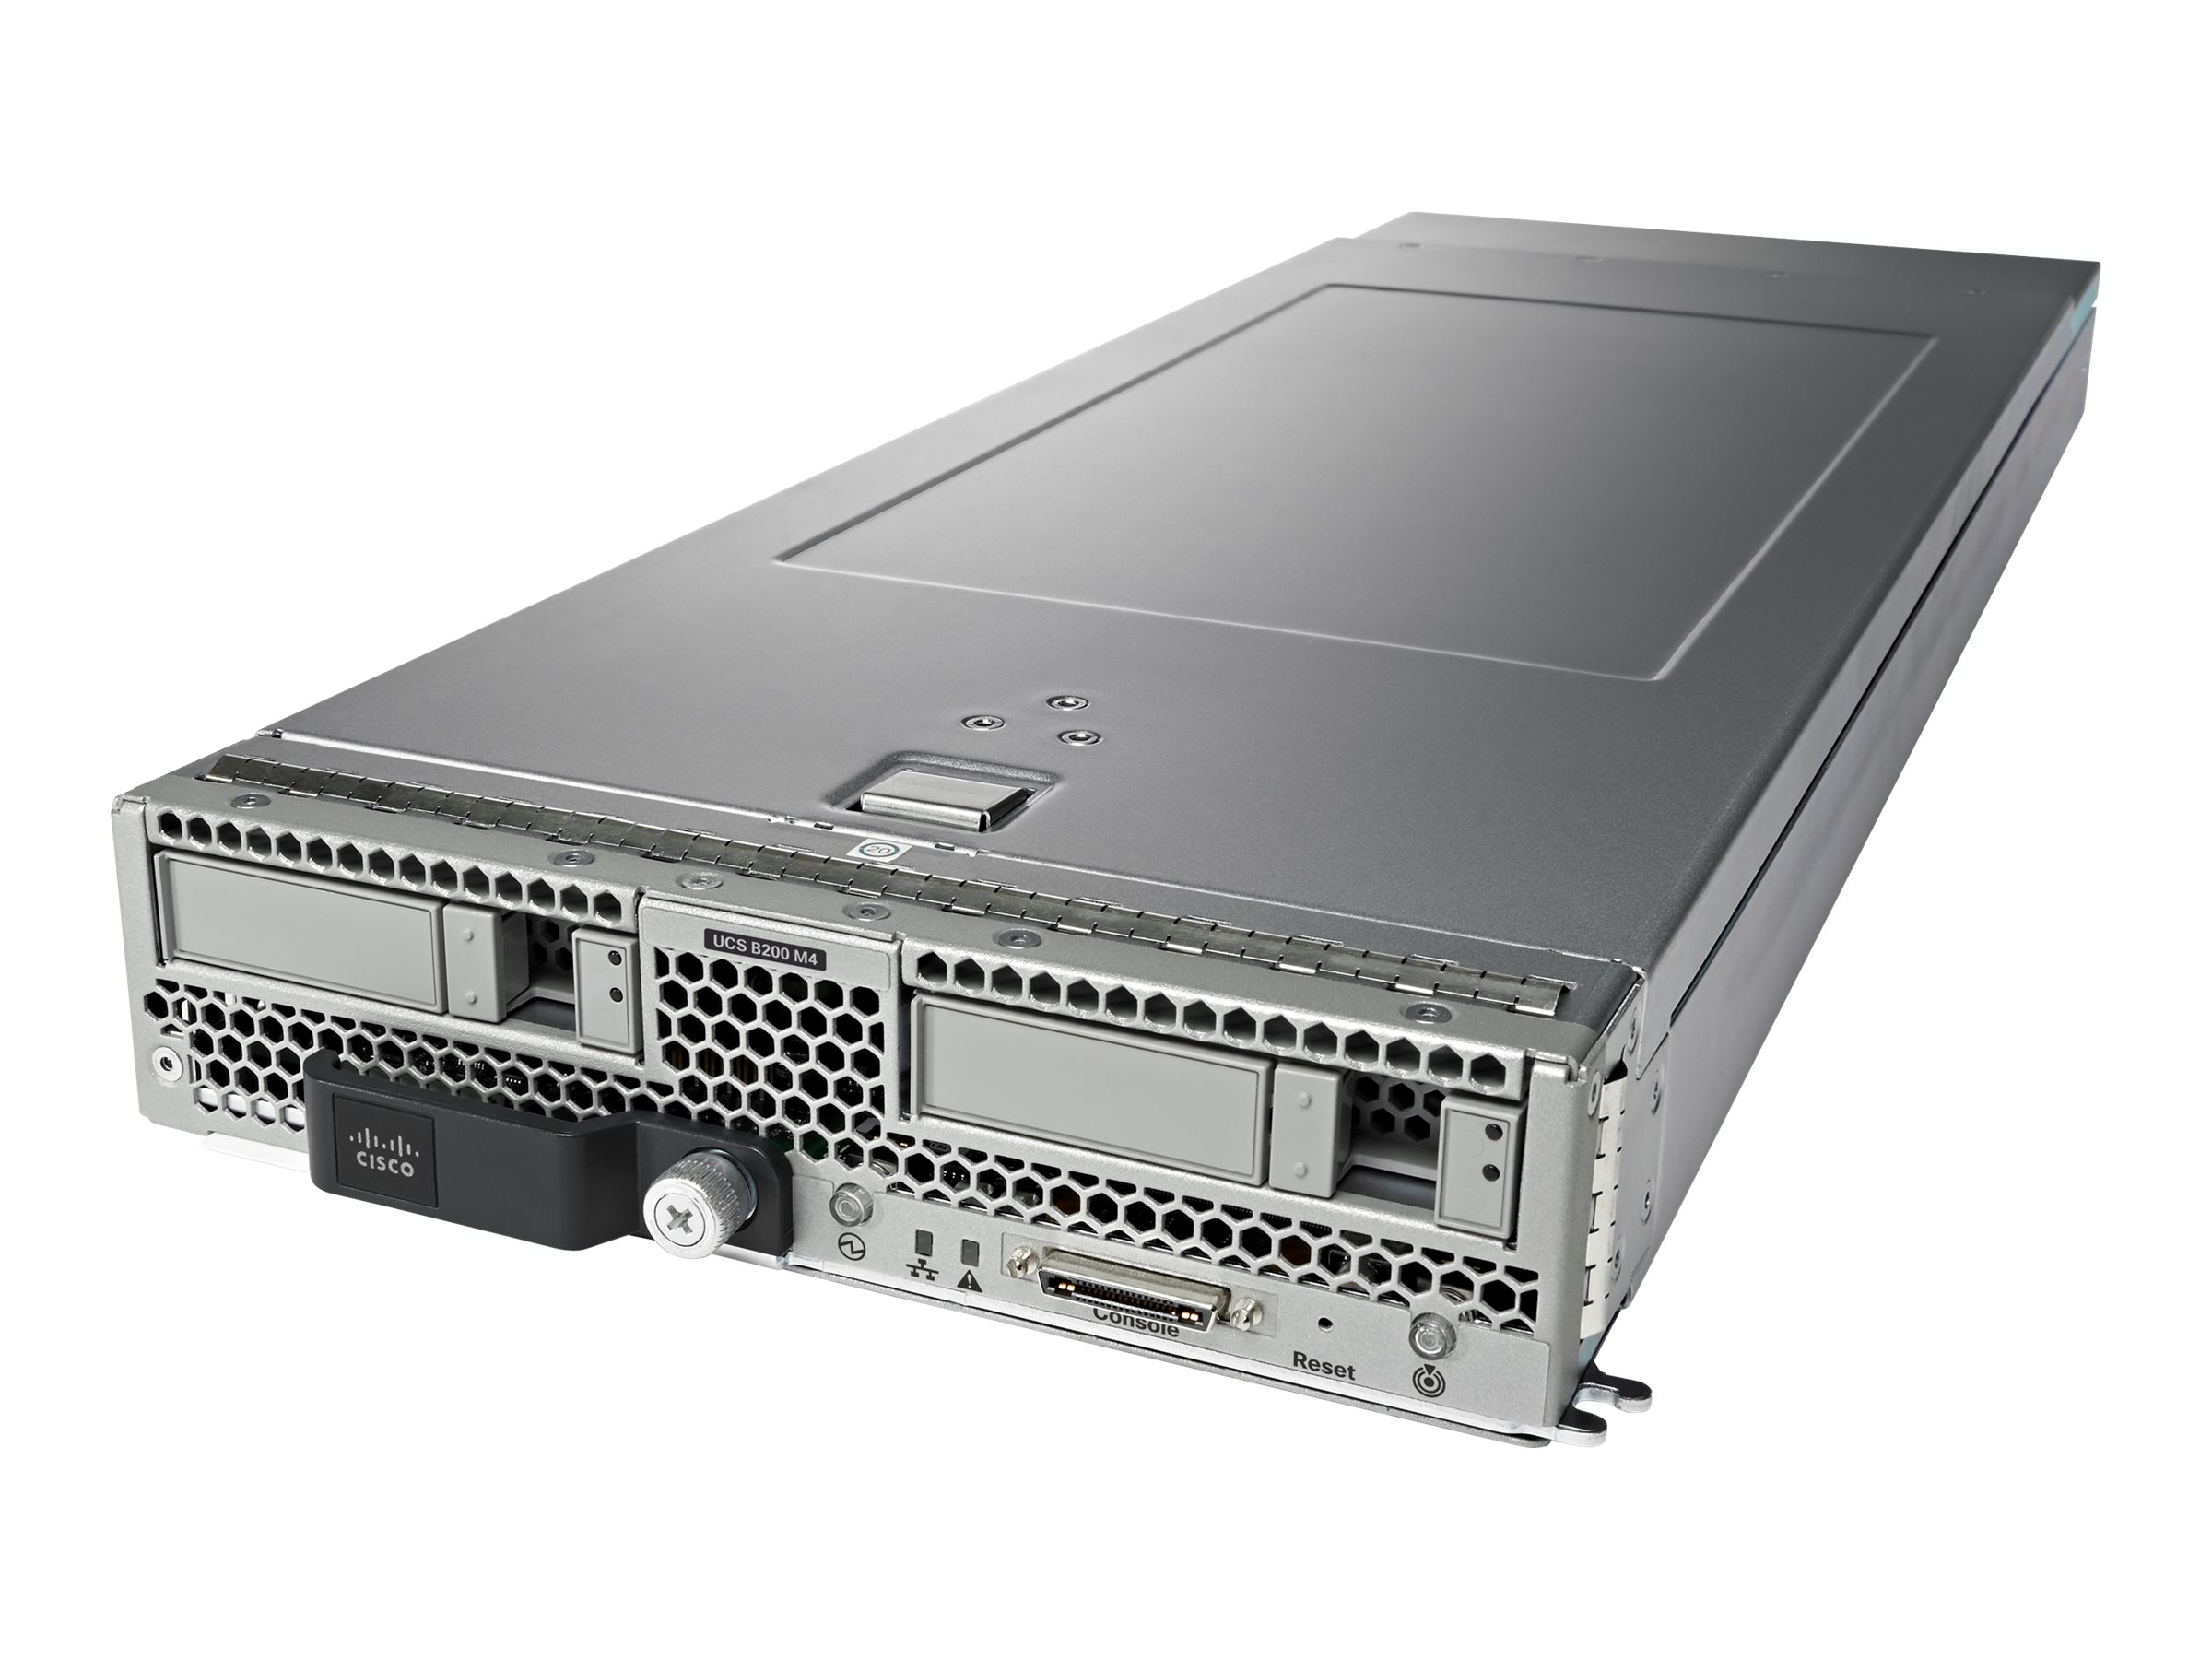 Cisco UCS B200 M4 Blade STD2 NOT SOLD STANDALONE, UCS-SP-B200M4-S2, 30839595, Servers - Blade